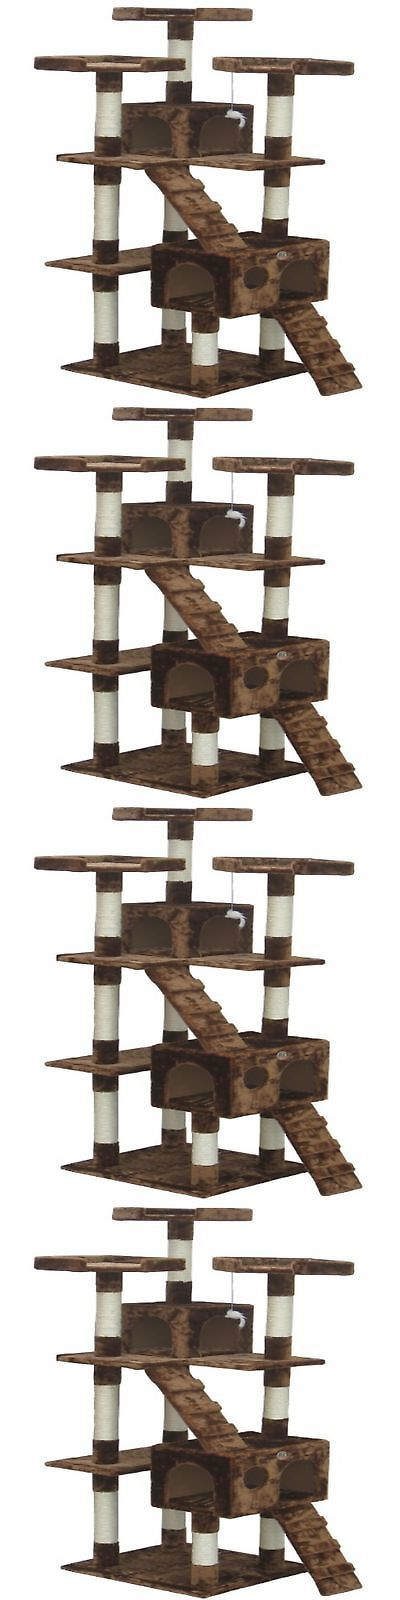 Animals Cats: Cat Tree For Large Cats 72 Scratching Post Furniture Climbing Tower Condo House -> BUY IT NOW ONLY: $72.88 on eBay!